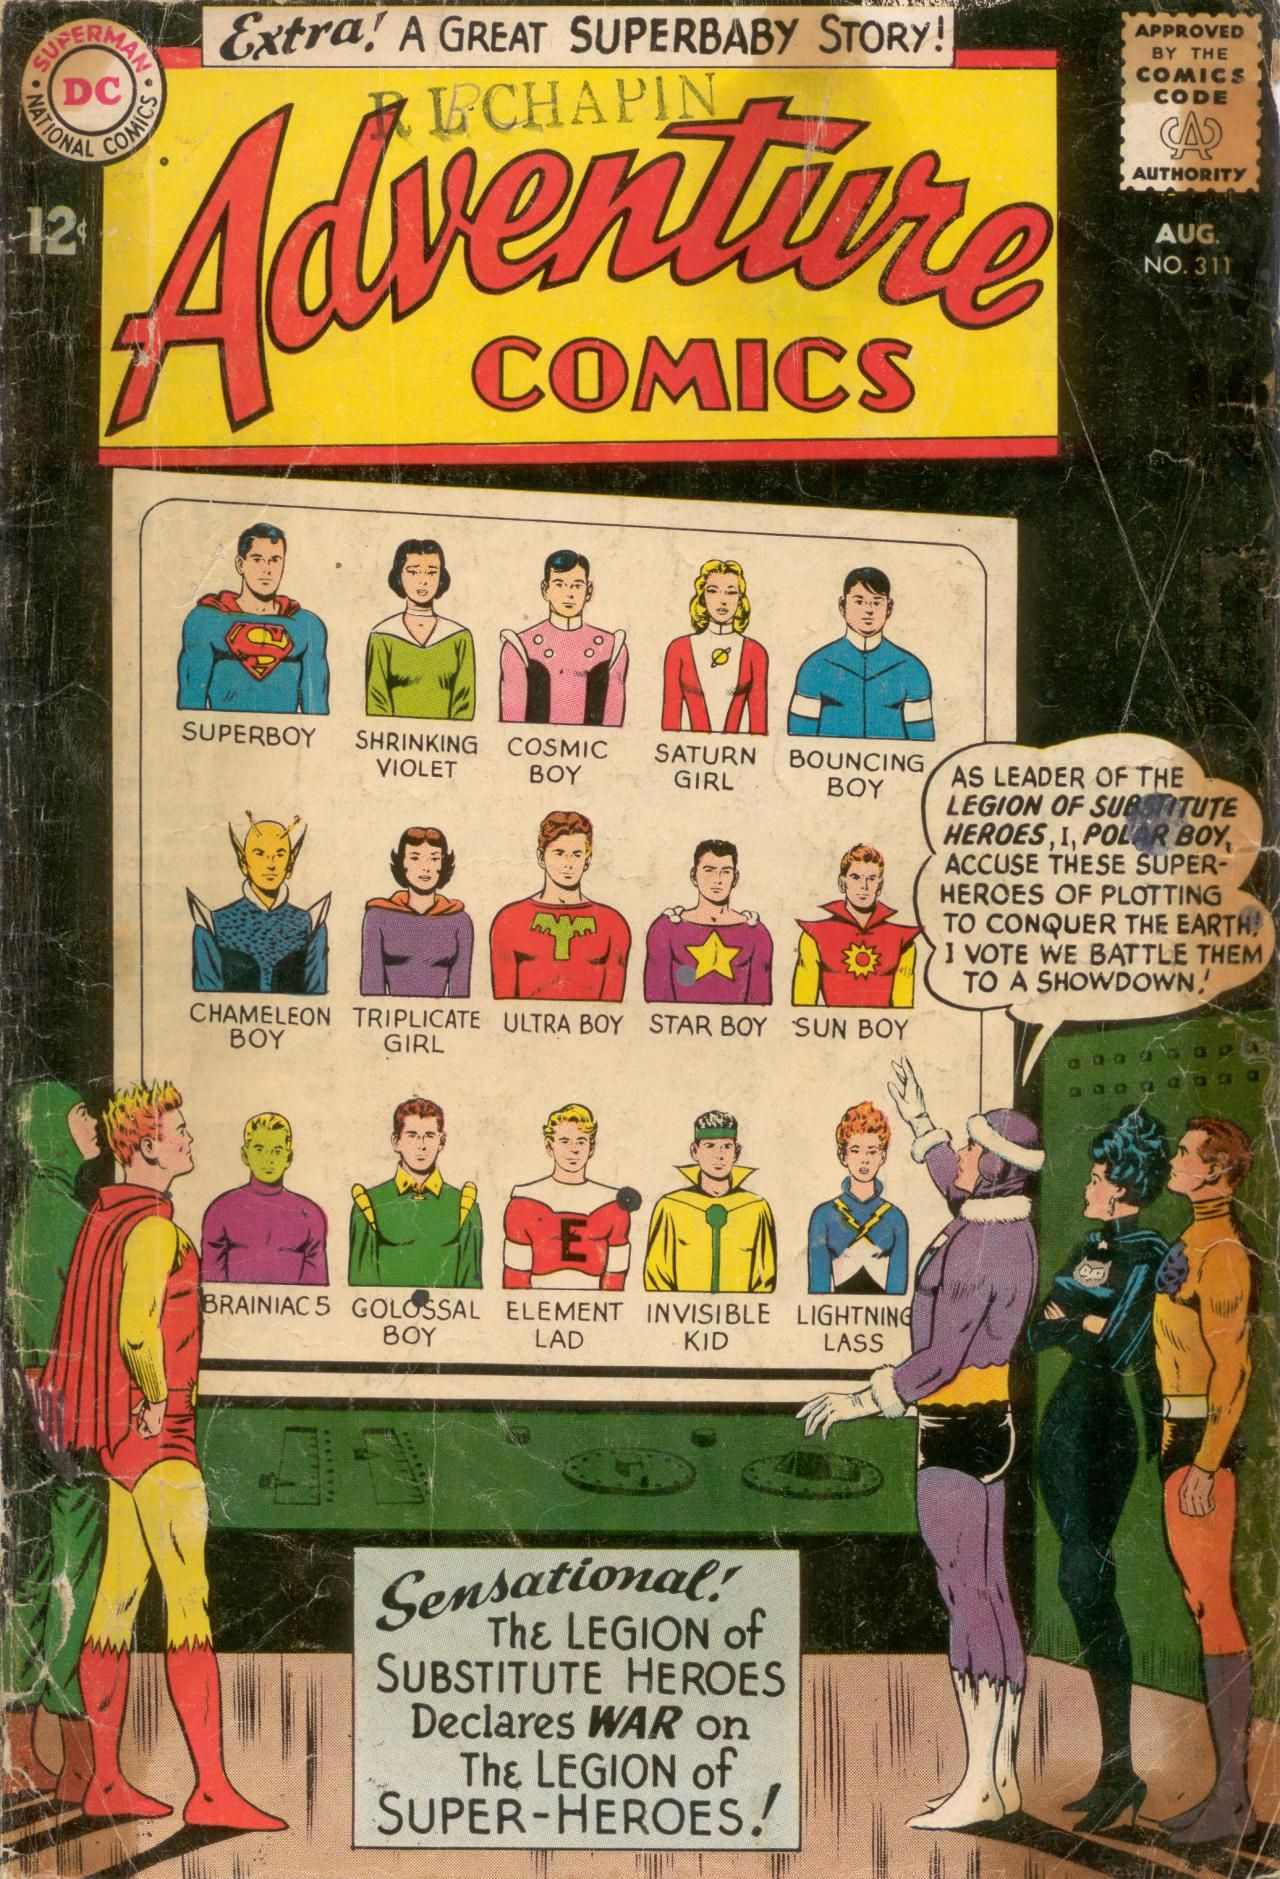 Adventure Comics 311, August 1963, cover by Curt Swan and George Klein